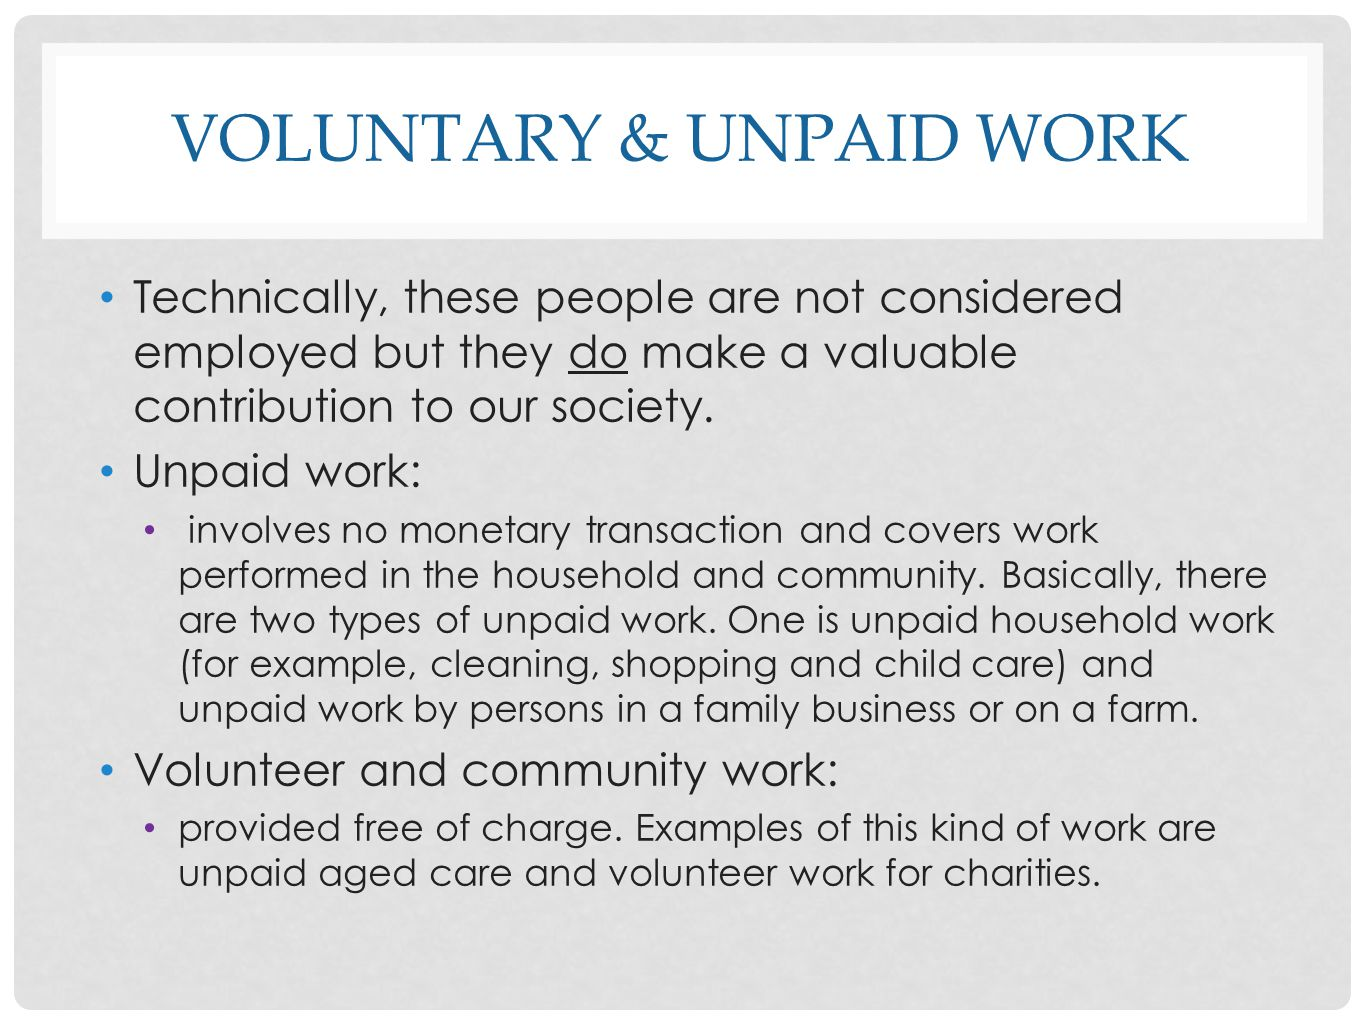 Voluntary & unpaid work